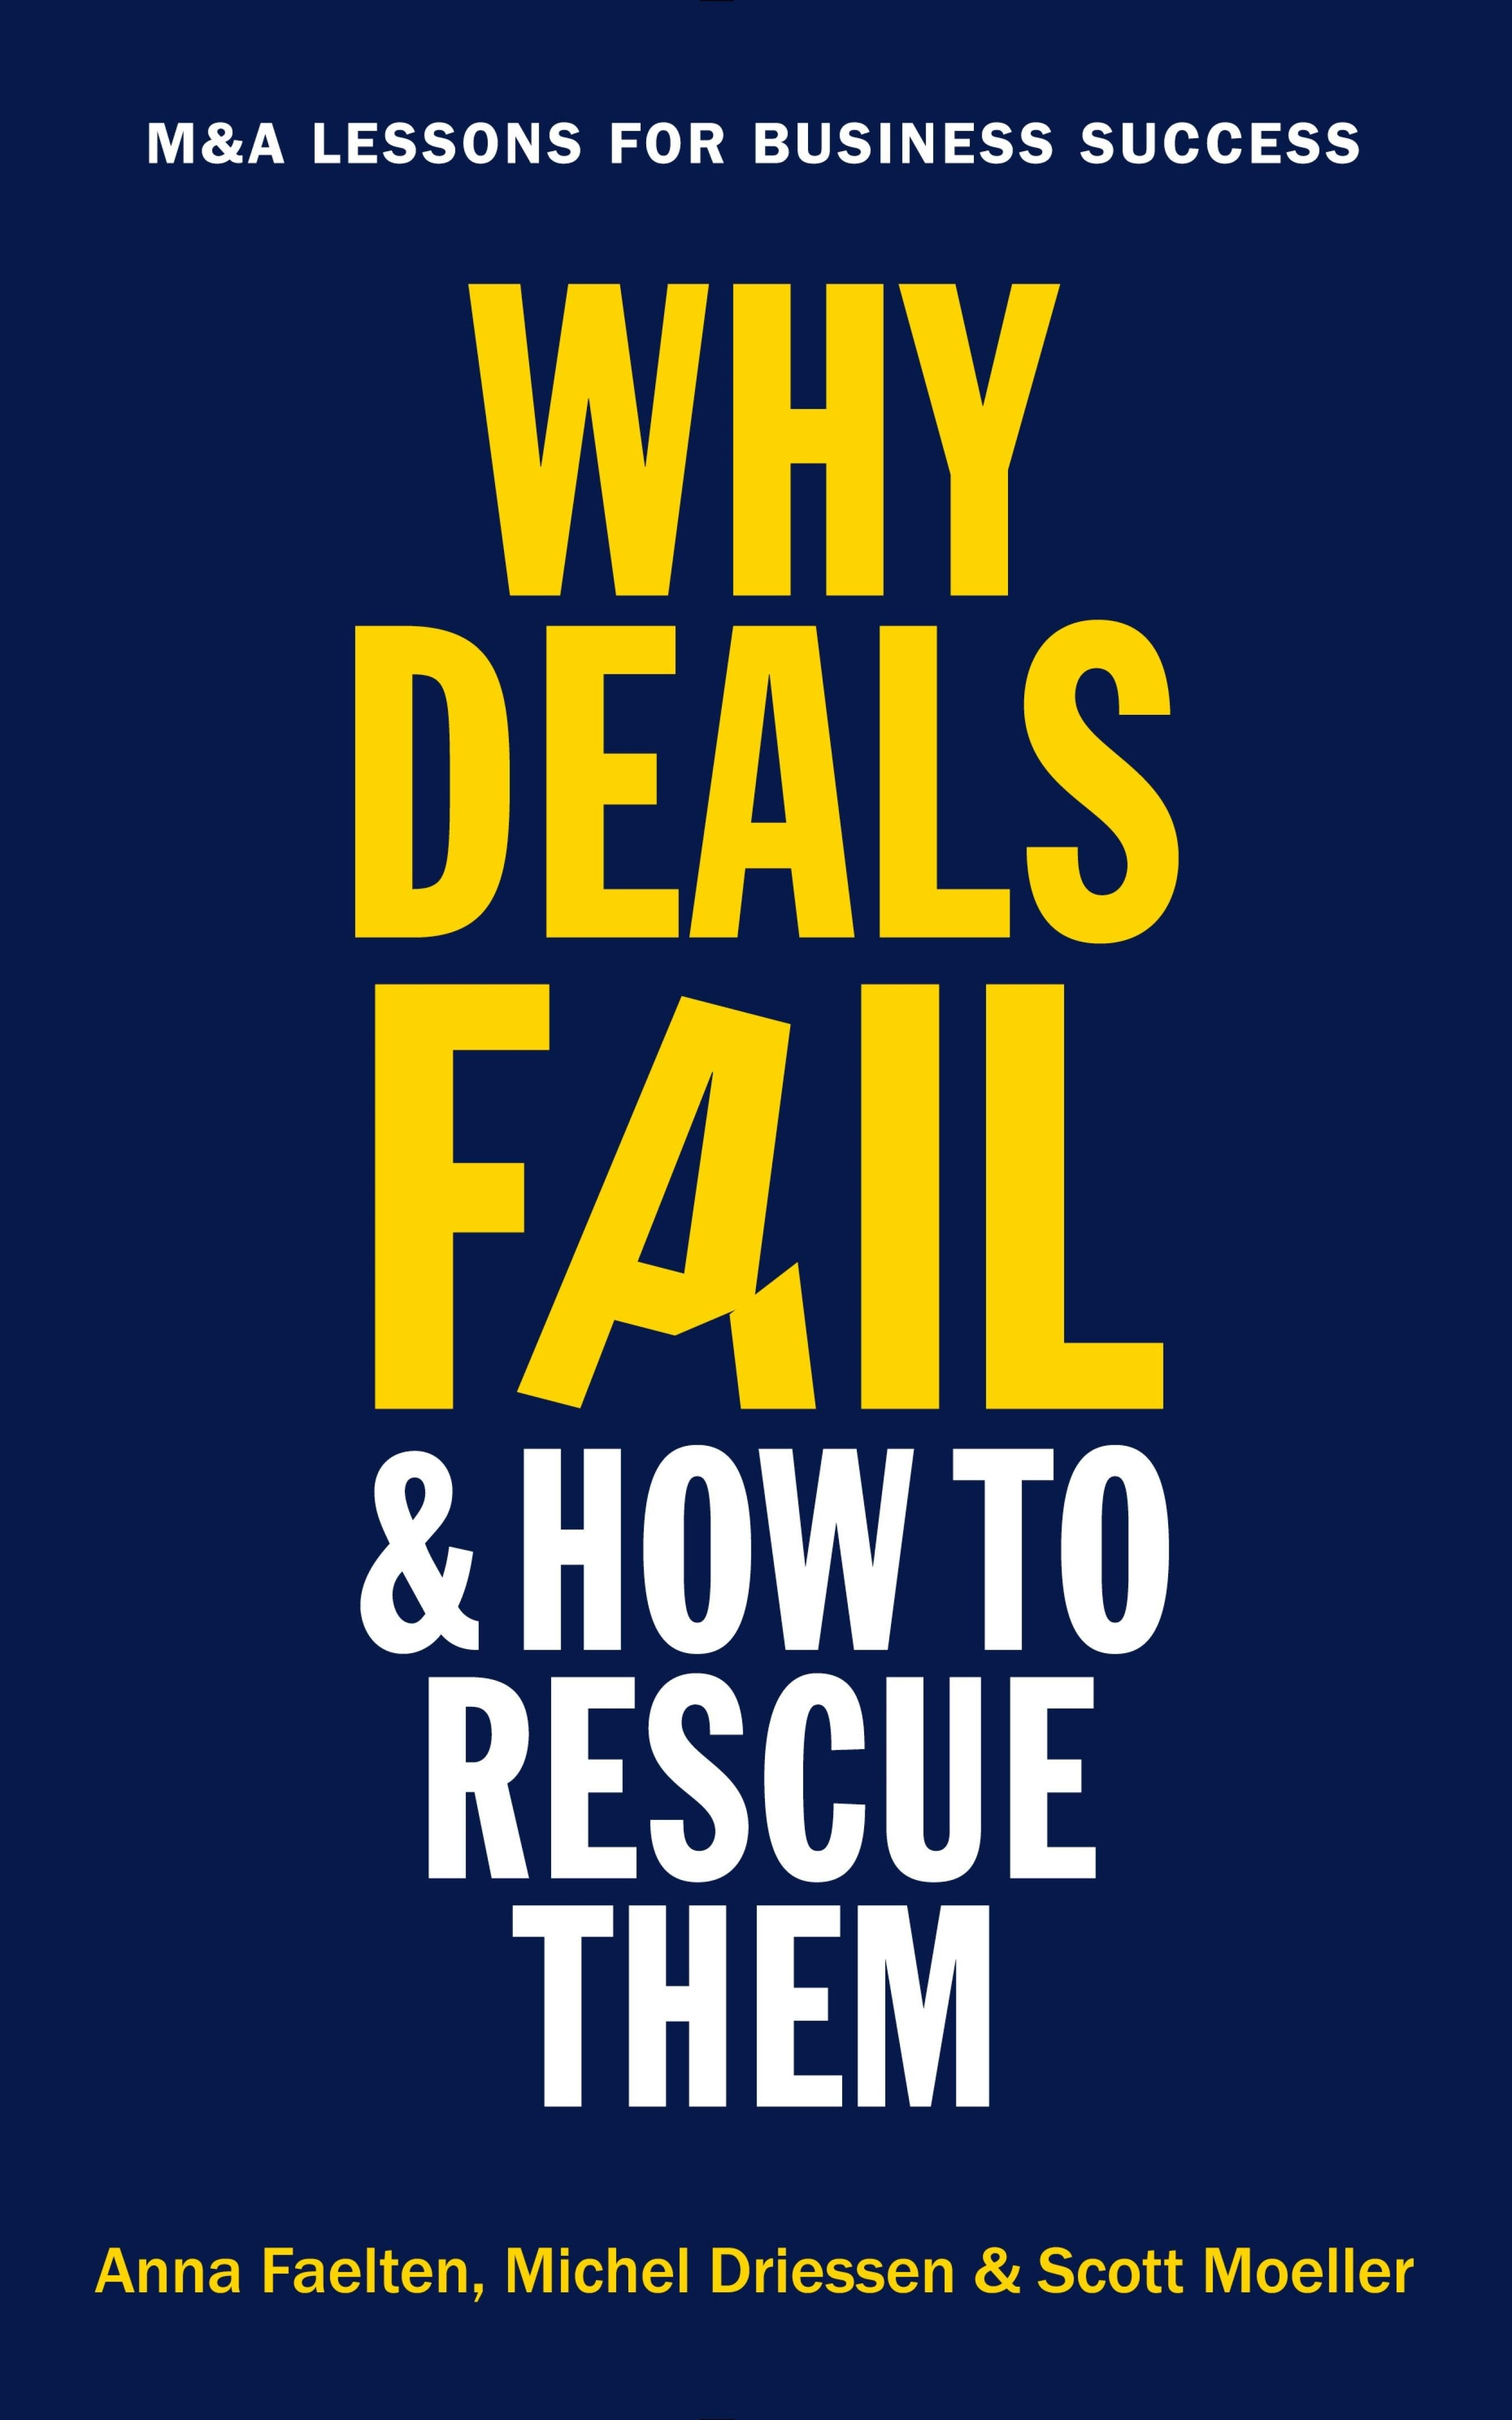 Fail To Deals Why And Themebook Rescue How XZTOkuPi